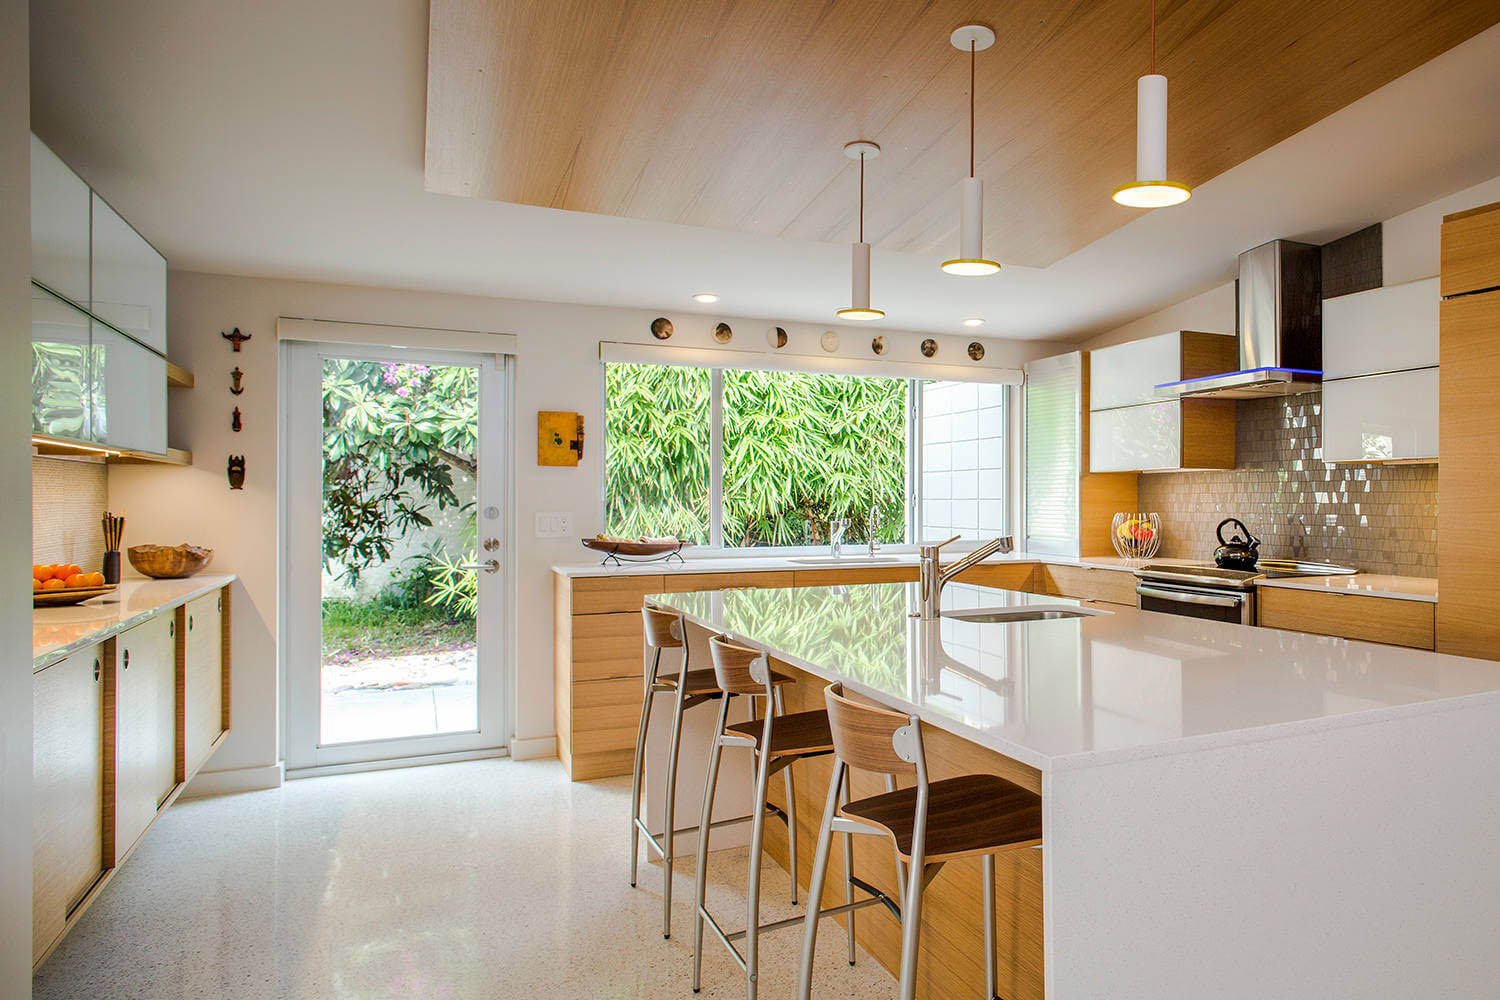 Industrial Style Kitchen Island Lighting Tastefully Decorated Modern Home With Mid Century